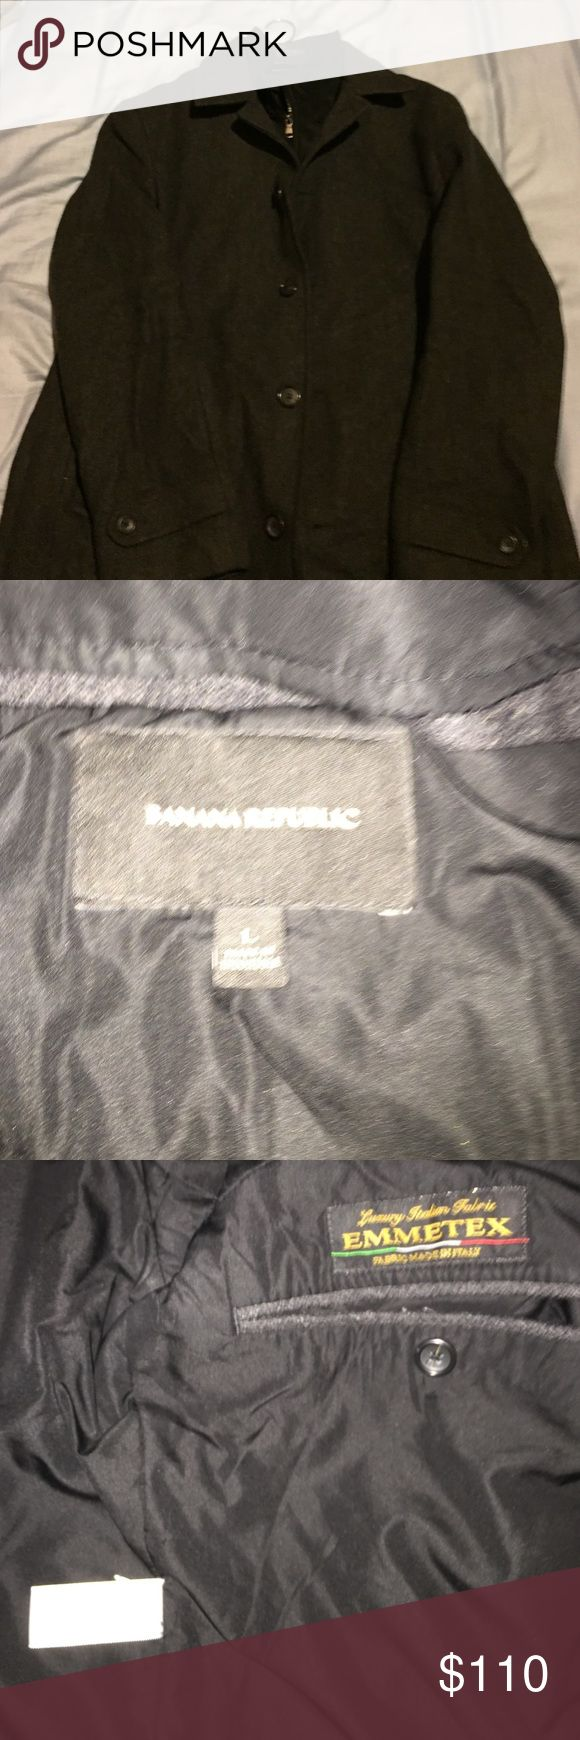 Large ladies wool,Banana Republic coat ,black Beautiful Italian wool coat only used 5 times,in great condition,no rips,has pockets and very warm and toasty.Black was on tag but has grey tones.Im new so ask me anything I may have forgot😊the back has a low cut style I tried to get into pictures. Banana Republic Jackets & Coats Pea Coats